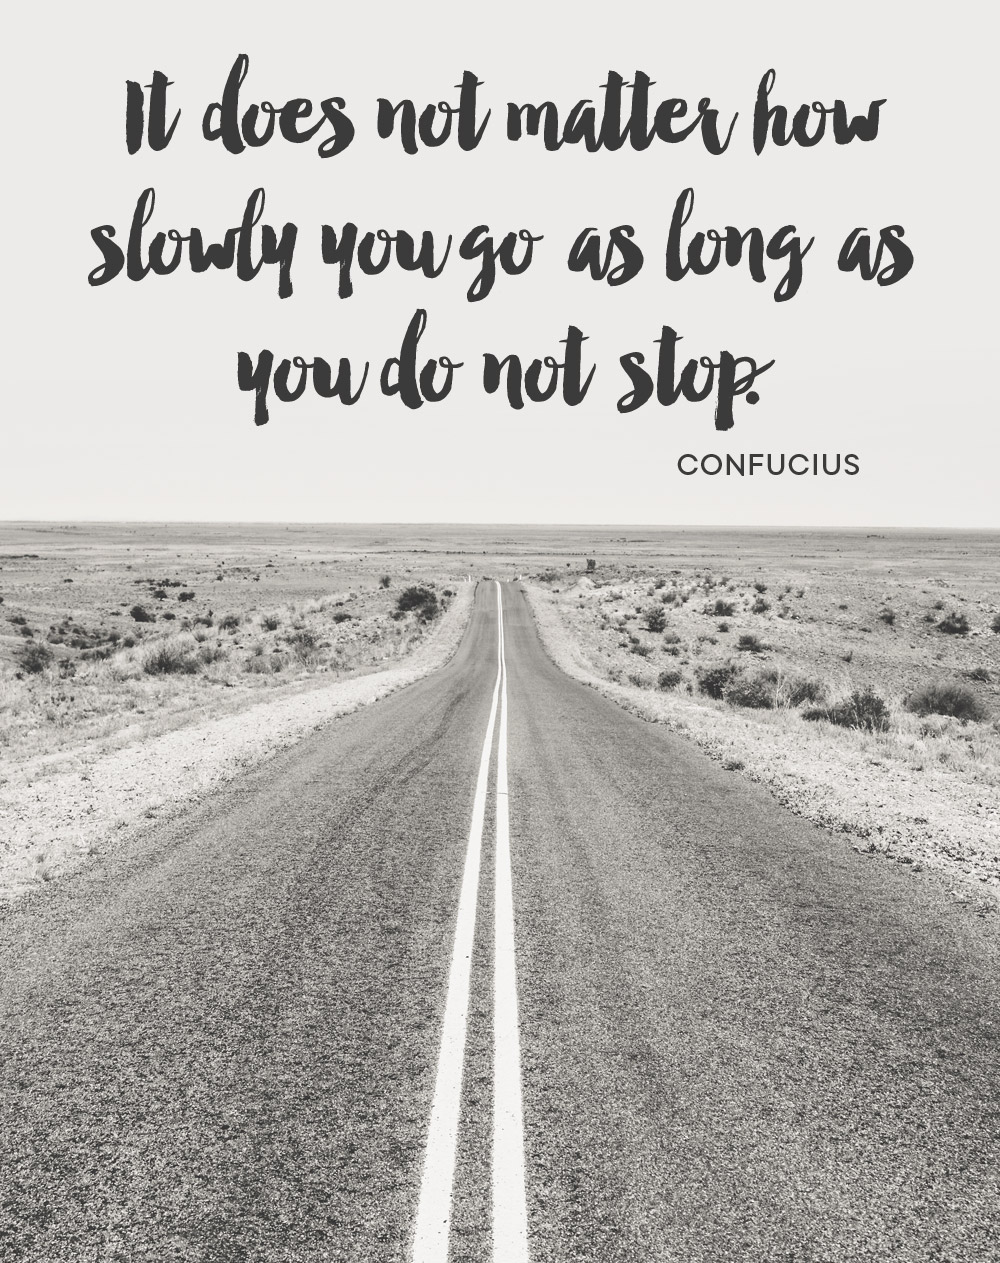 It does not mater how slowly you go as long as you do not stop. -Confucius | shannonmcnab.com